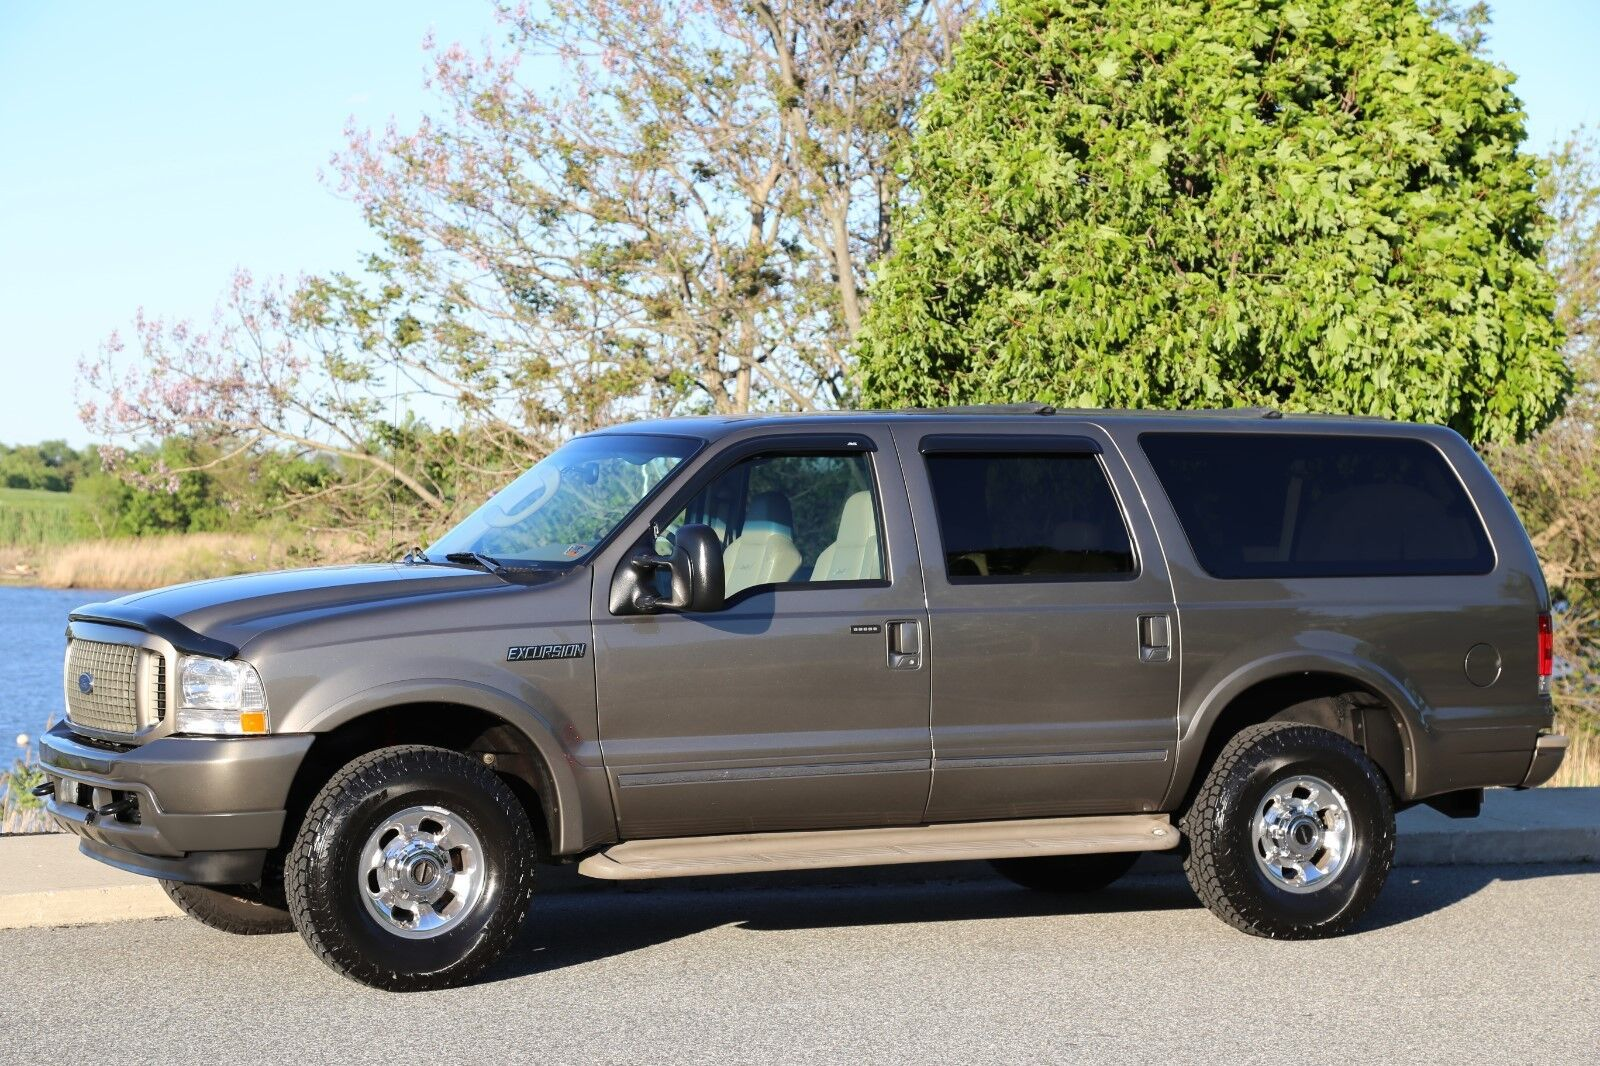 2003 ford excursion limited diesel low miles 2 owner nice 4x4 no reserve used ford. Black Bedroom Furniture Sets. Home Design Ideas